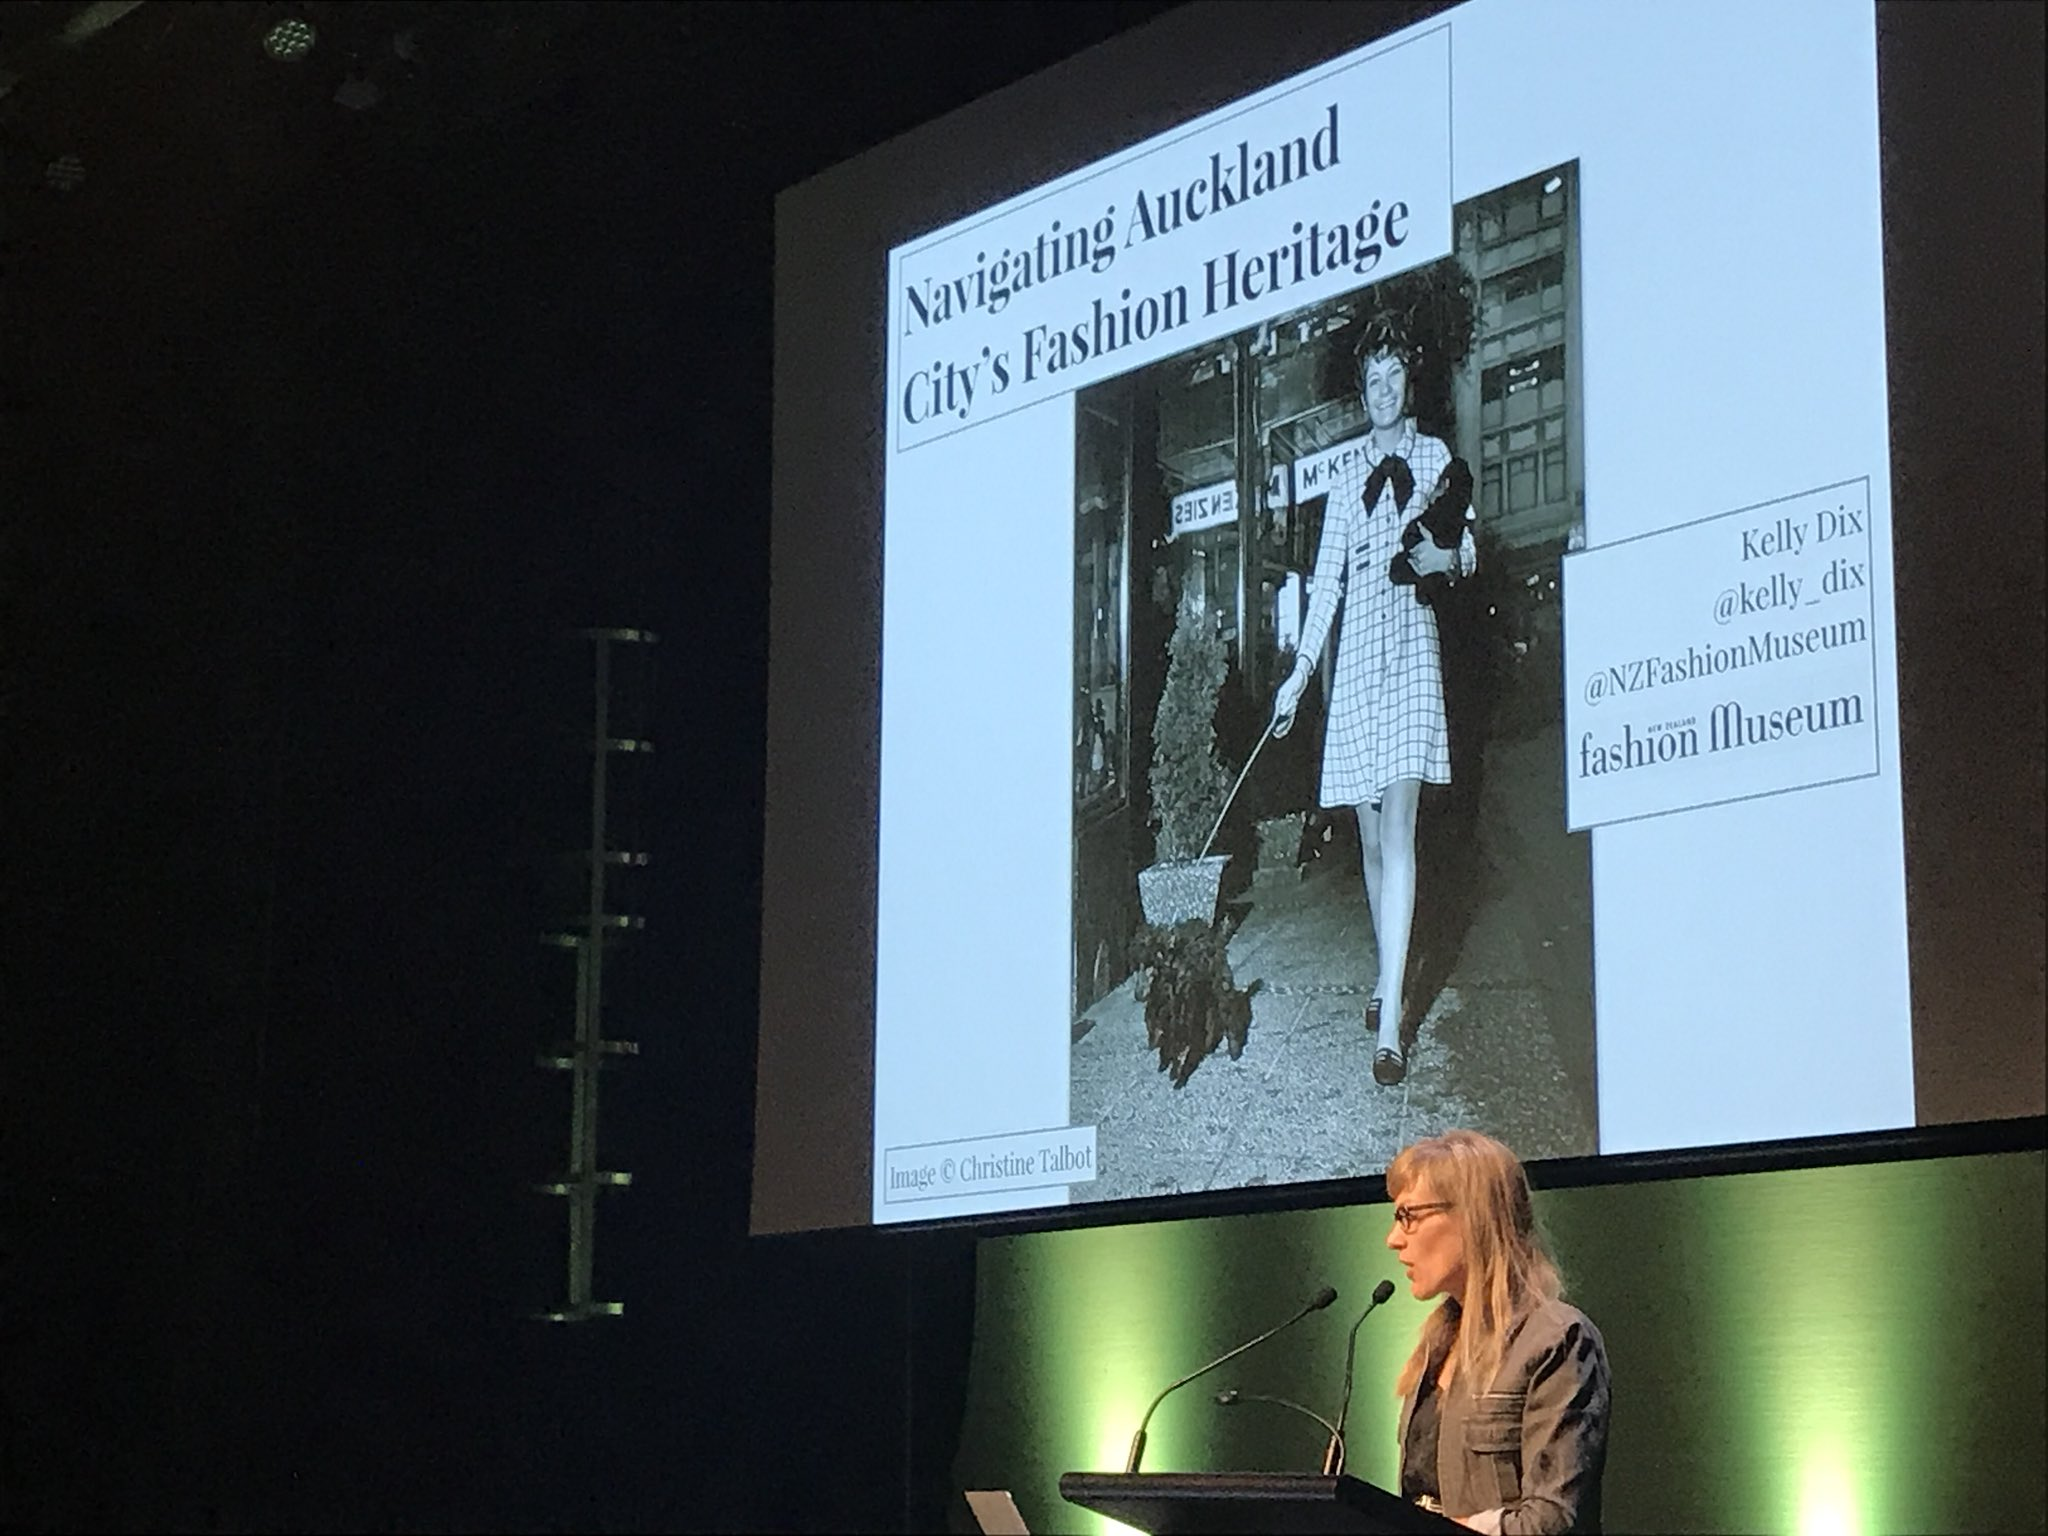 Kelly Dix from the @NZFashionMuseum talking about Walking the Walk #NDFNZ https://t.co/UbnH1fDpwE